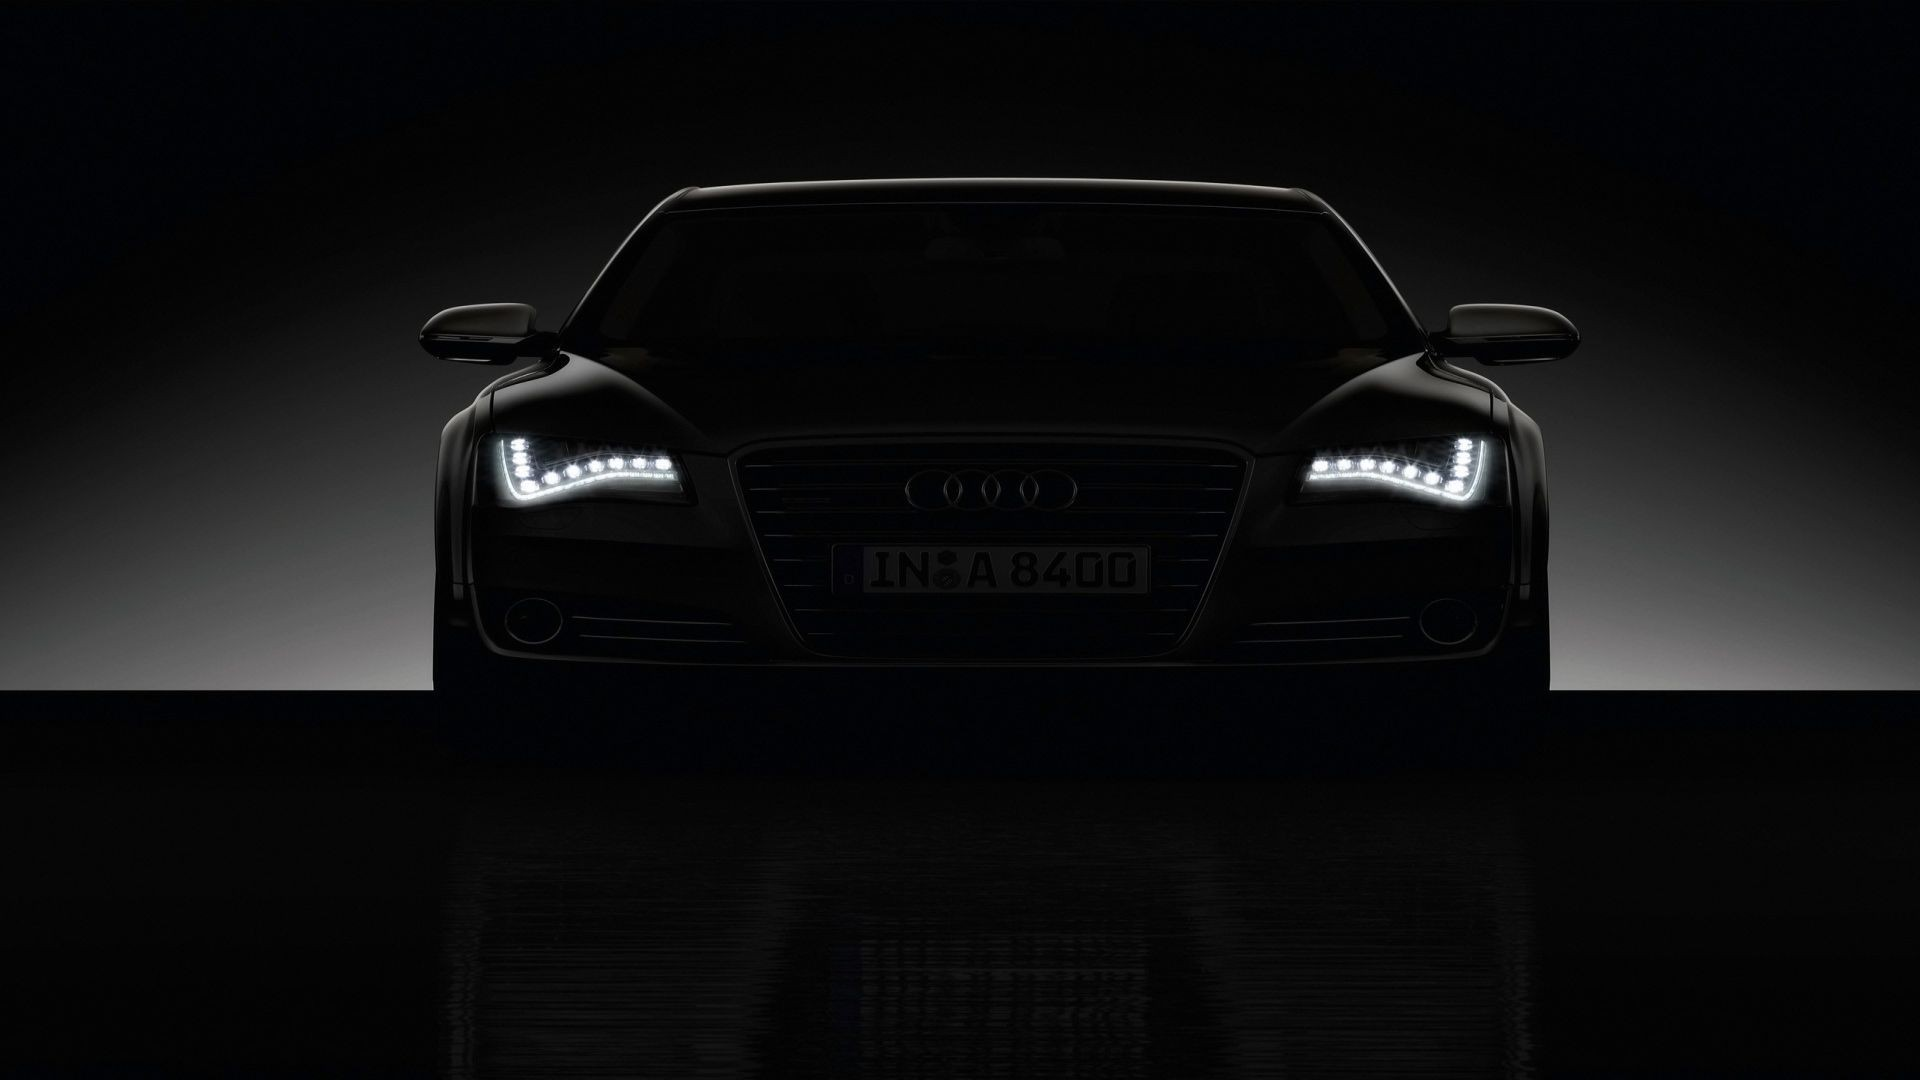 Audi R8 Cars Wallpapers Hd Audi Headlights Hd Cars 4k Wallpapers Images